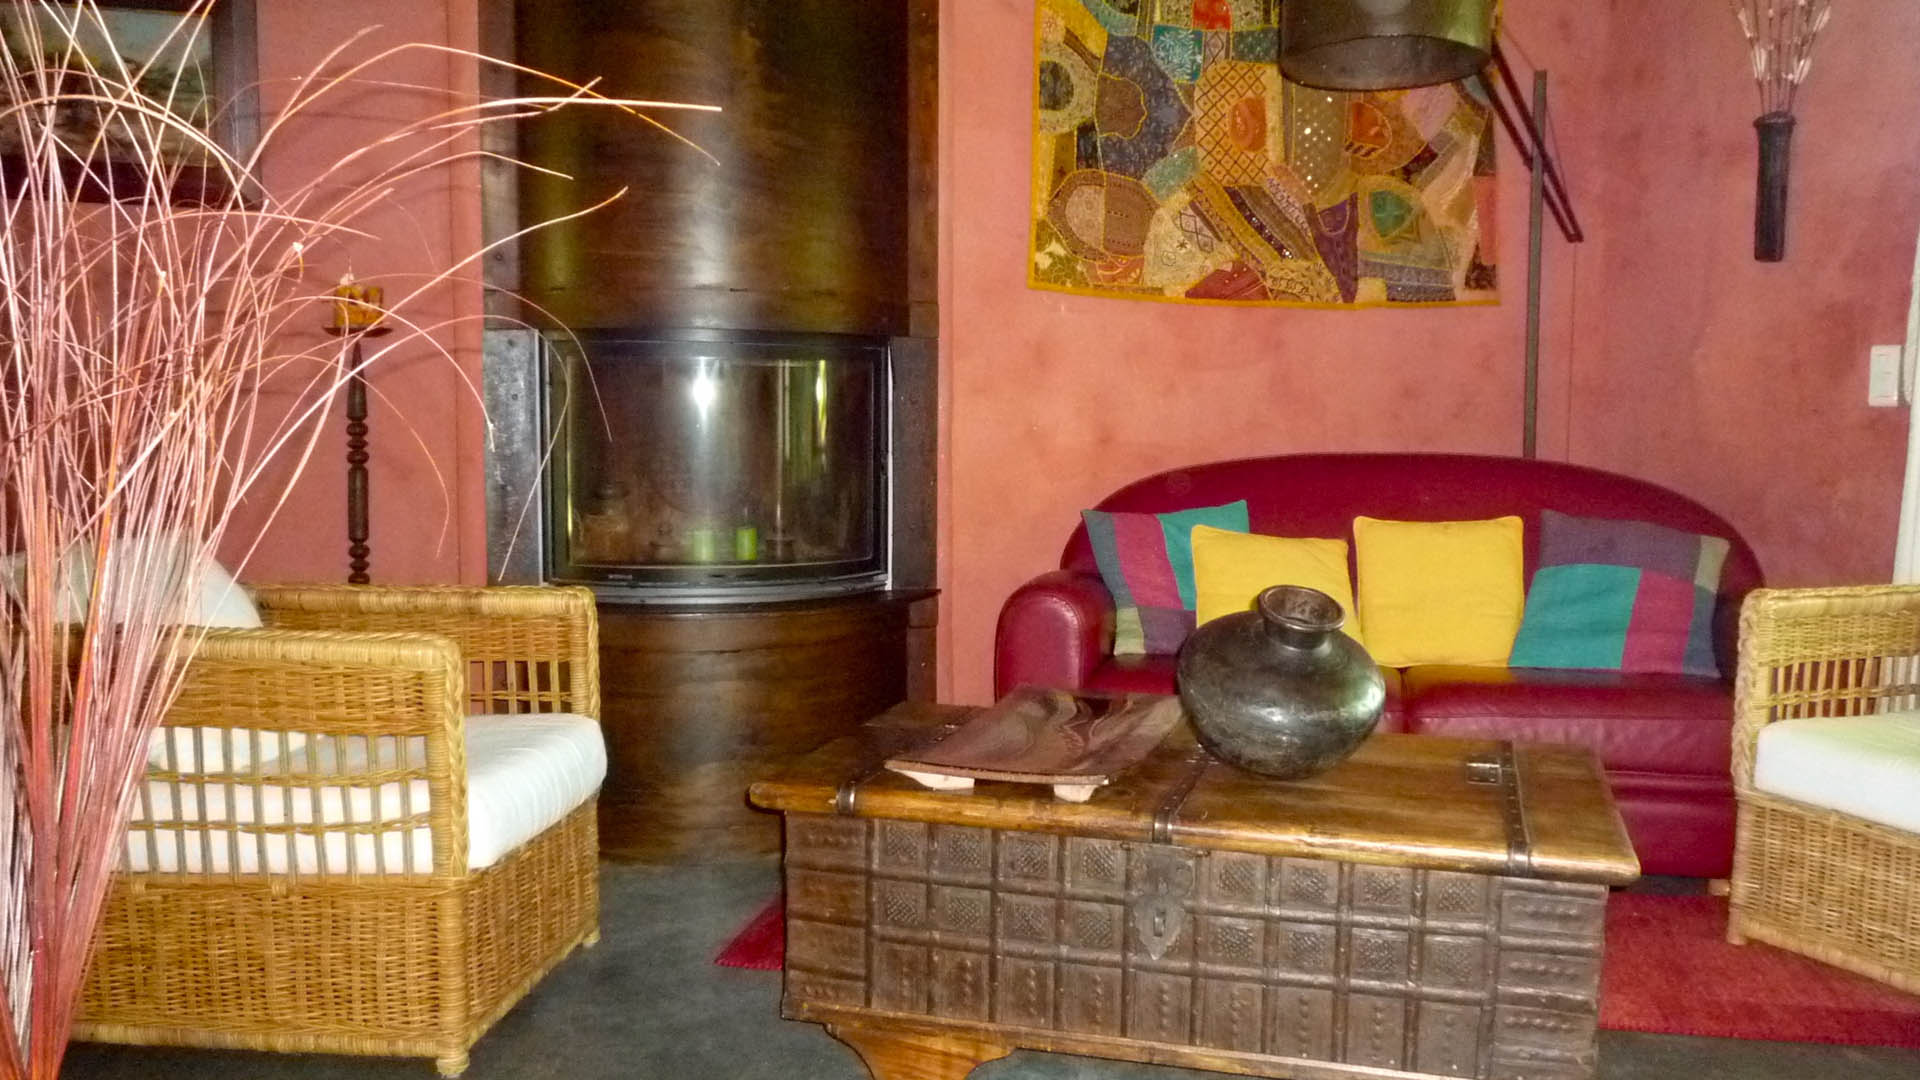 Provence Decoration Cottage Bed And Breakfast In Saint Rémy De Provence France Ochre